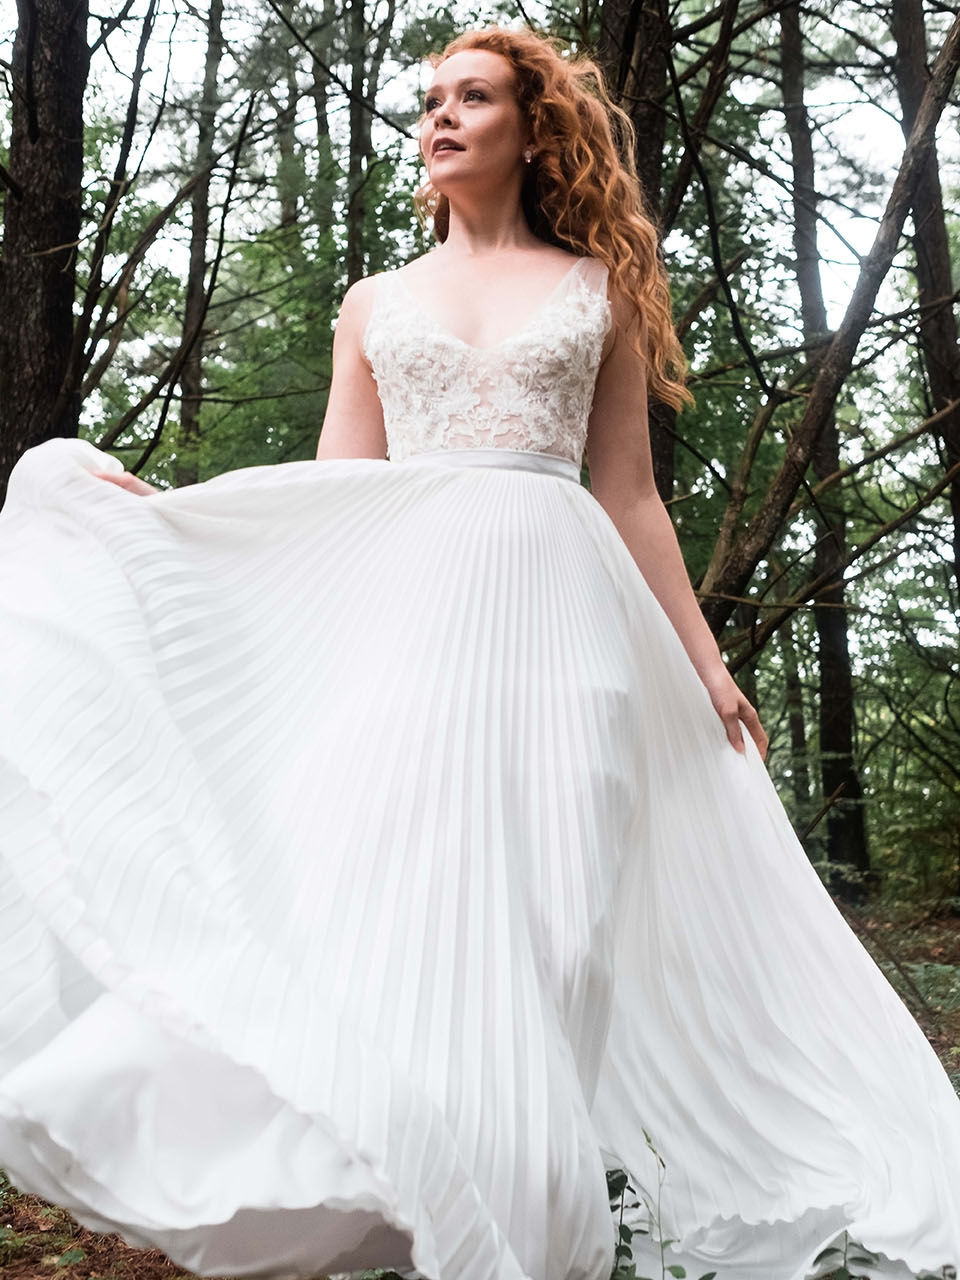 rebecca_schoneveld_quinn_gown_applique_bodice_pleated_skirt_romantic_4.jpg